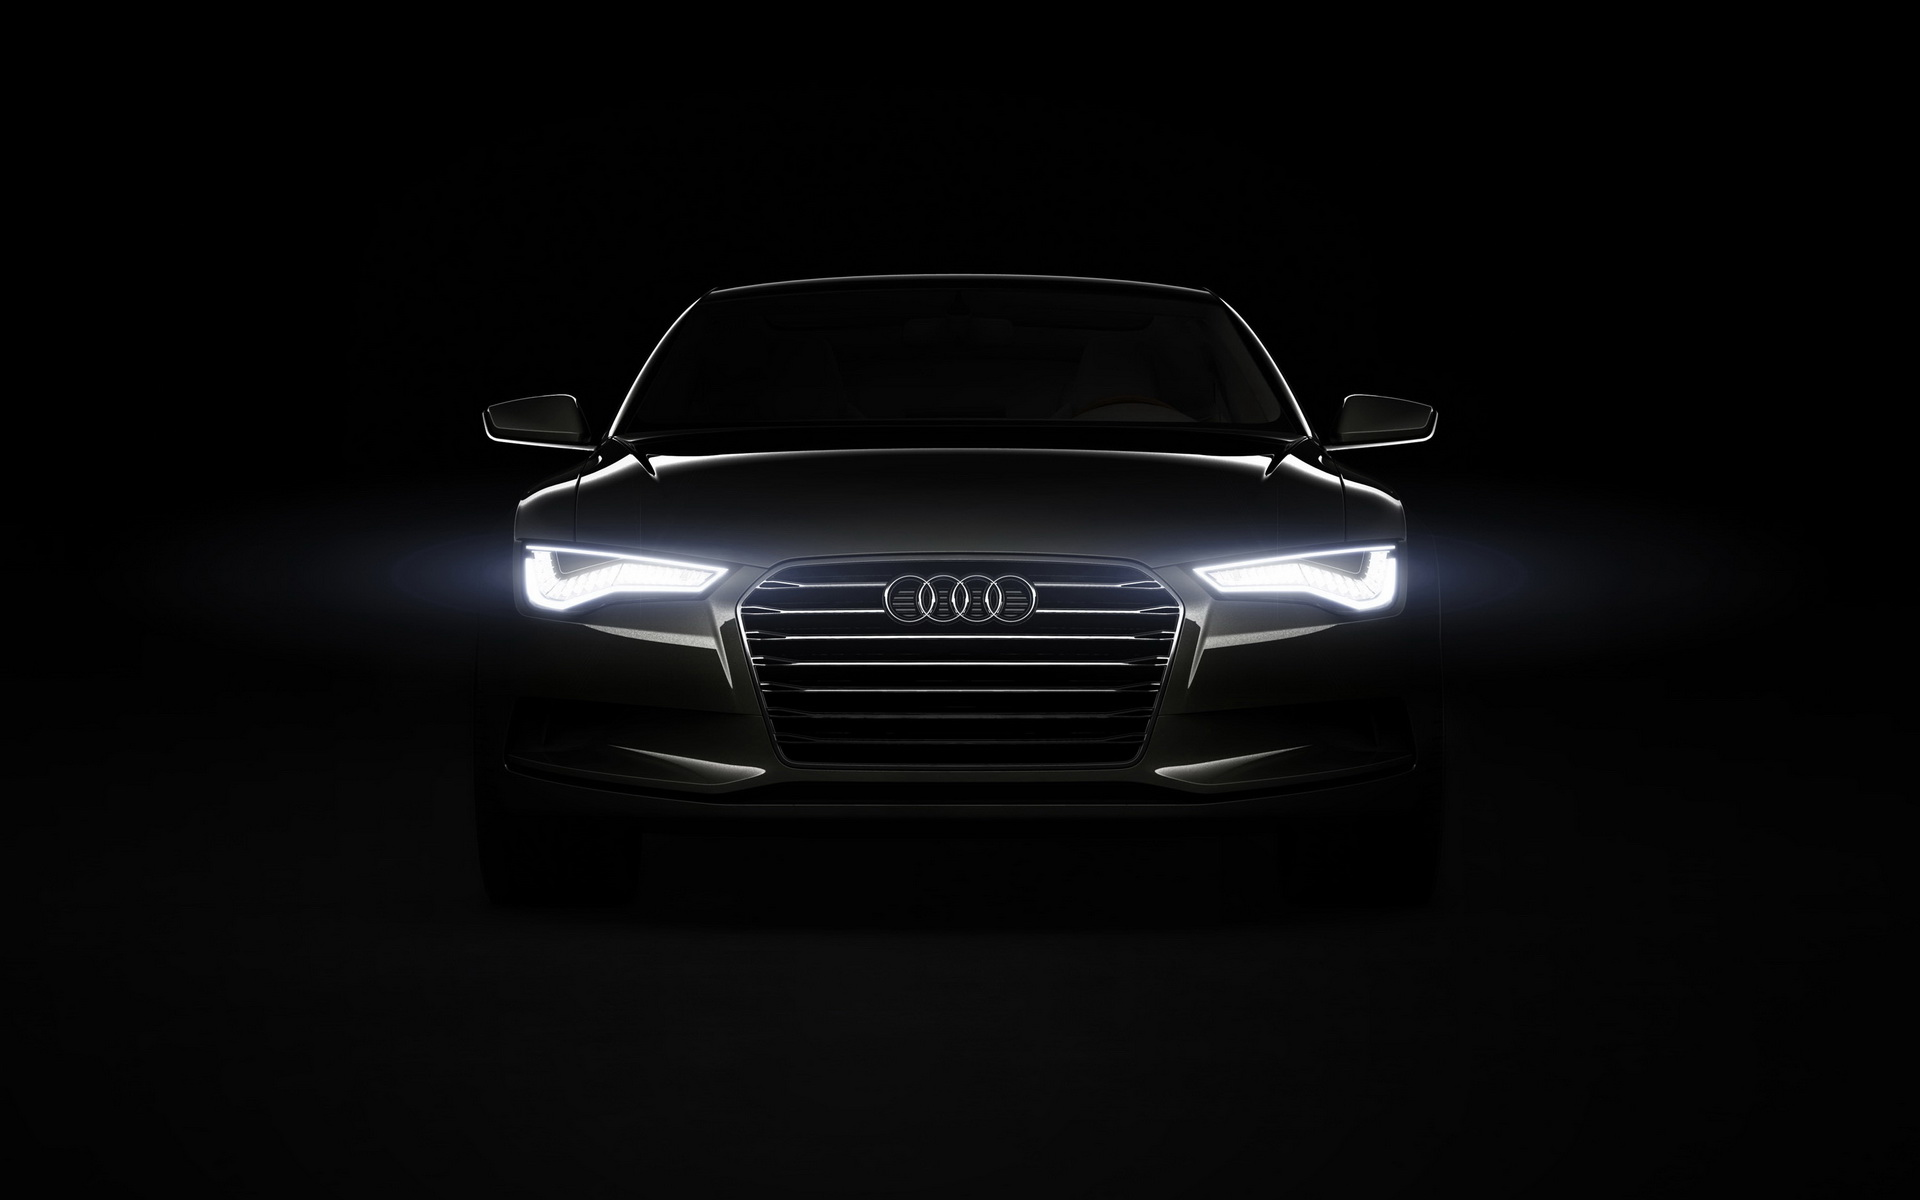 Audi Wallpapers For Desktop Wallpapersafari